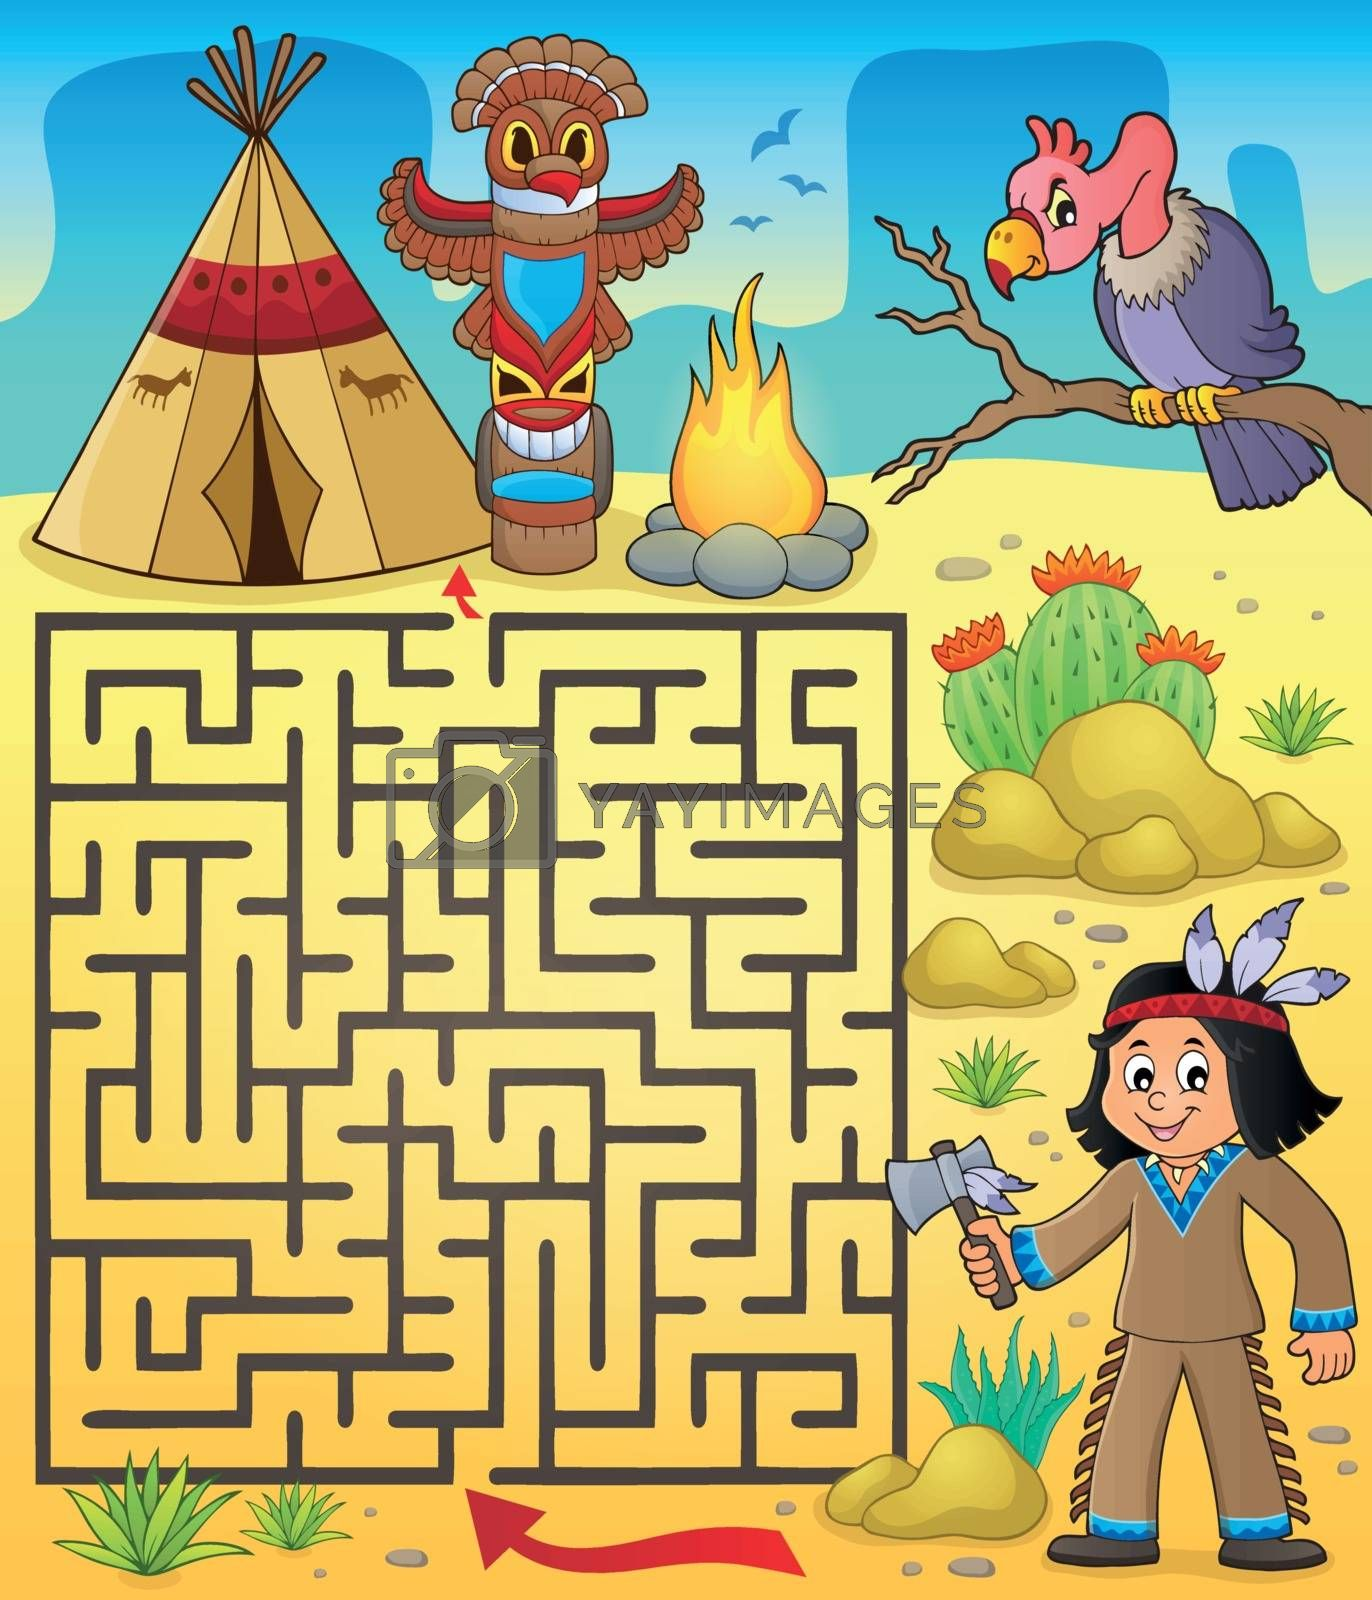 Maze 3 with Native American boy - eps10 vector illustration.